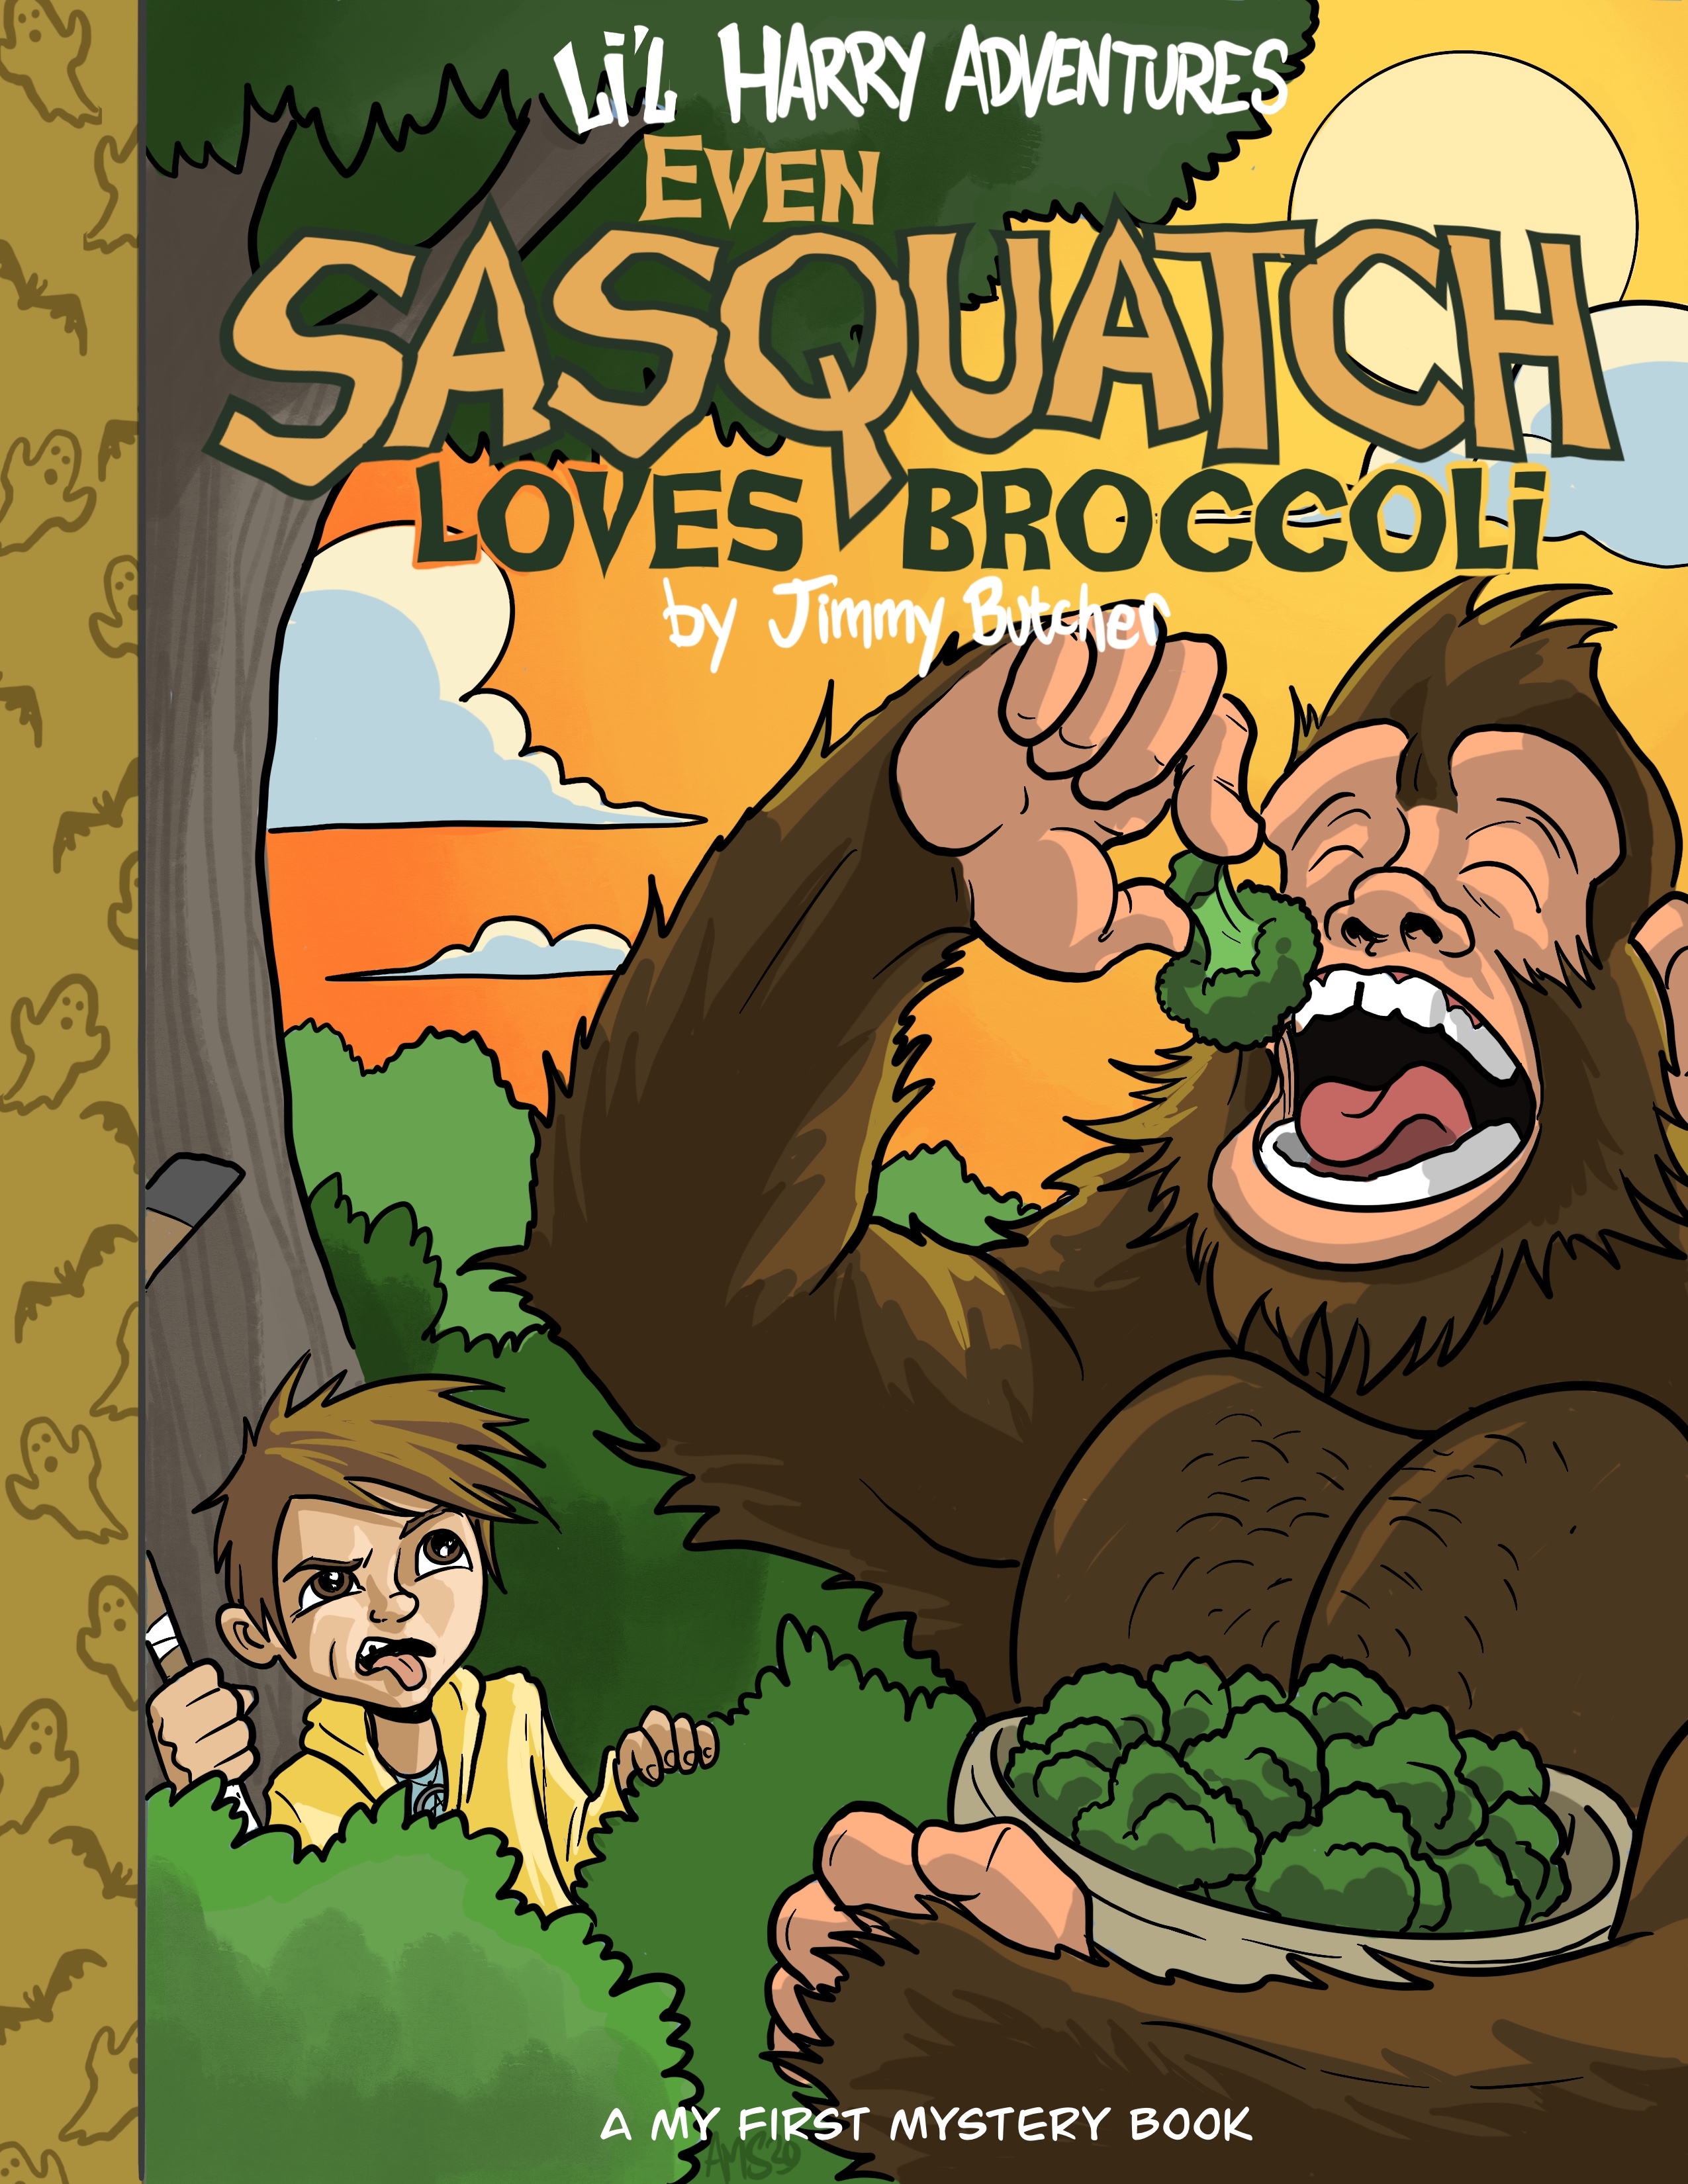 Li'l Harry Adventures: Even Sasquatch Loves Broccoli!